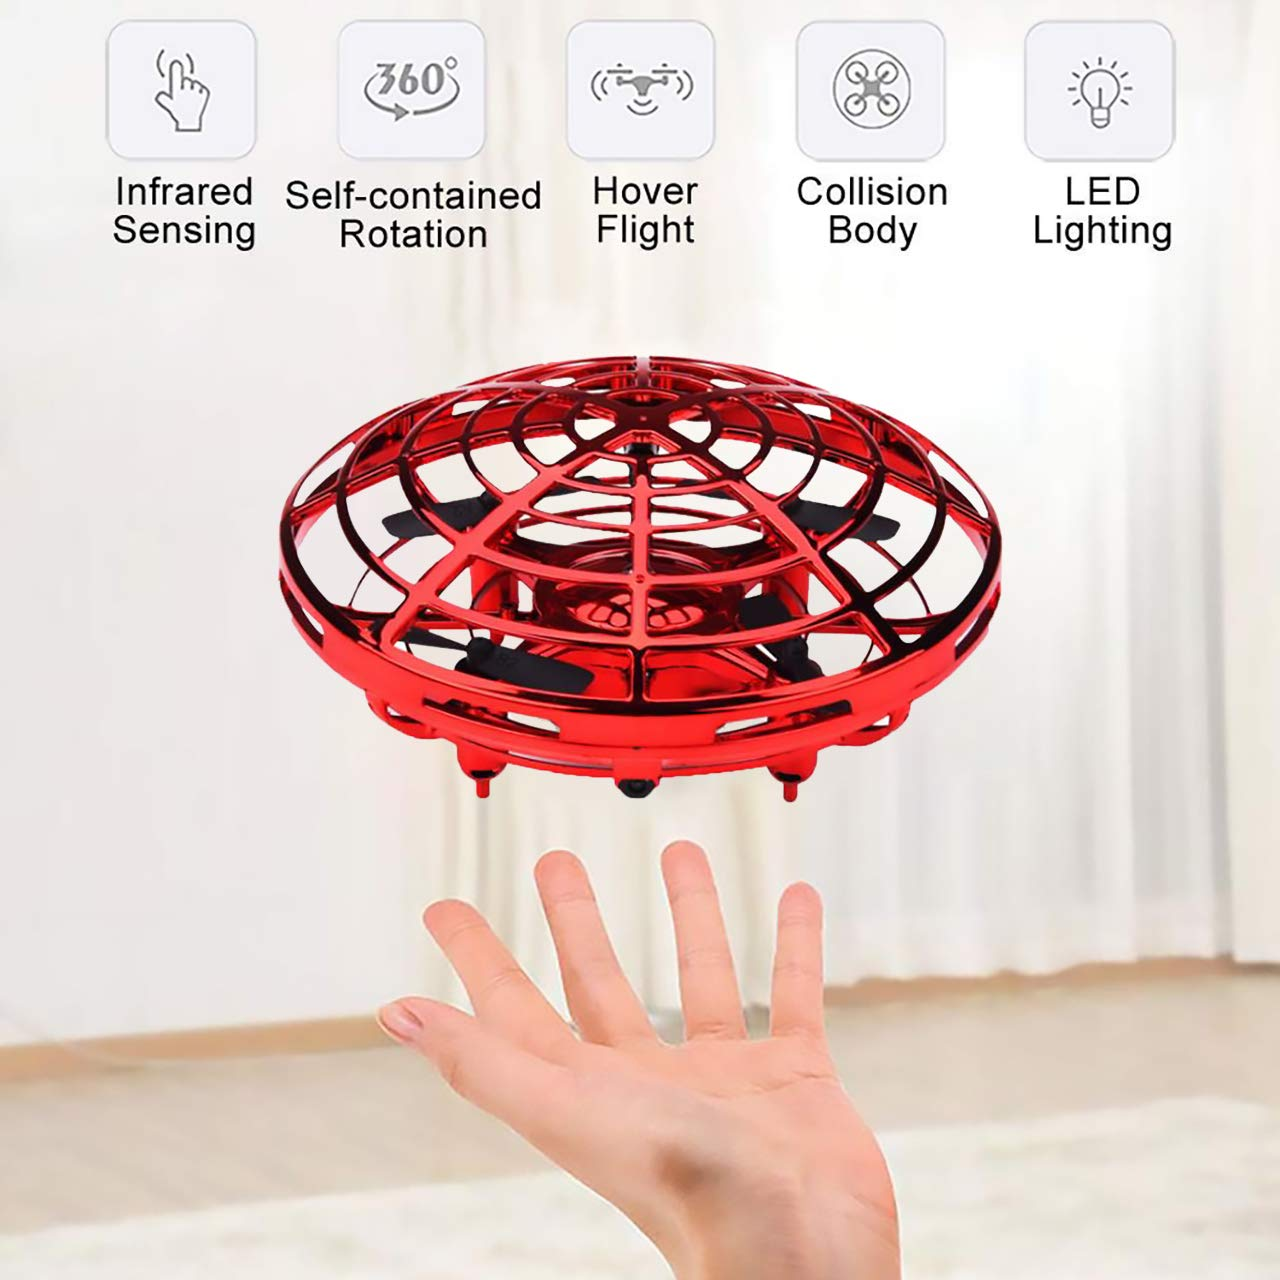 MuD-A Flying Ball Toy Drones,Hand Operated Drones for Kids or Adults - Scoot Flying Ball Drone,with 360°Rotating and Flashing LED Lights Mini Drone,for Boys and Girls, Kids Gifts (Red) by MuD-A (Image #2)